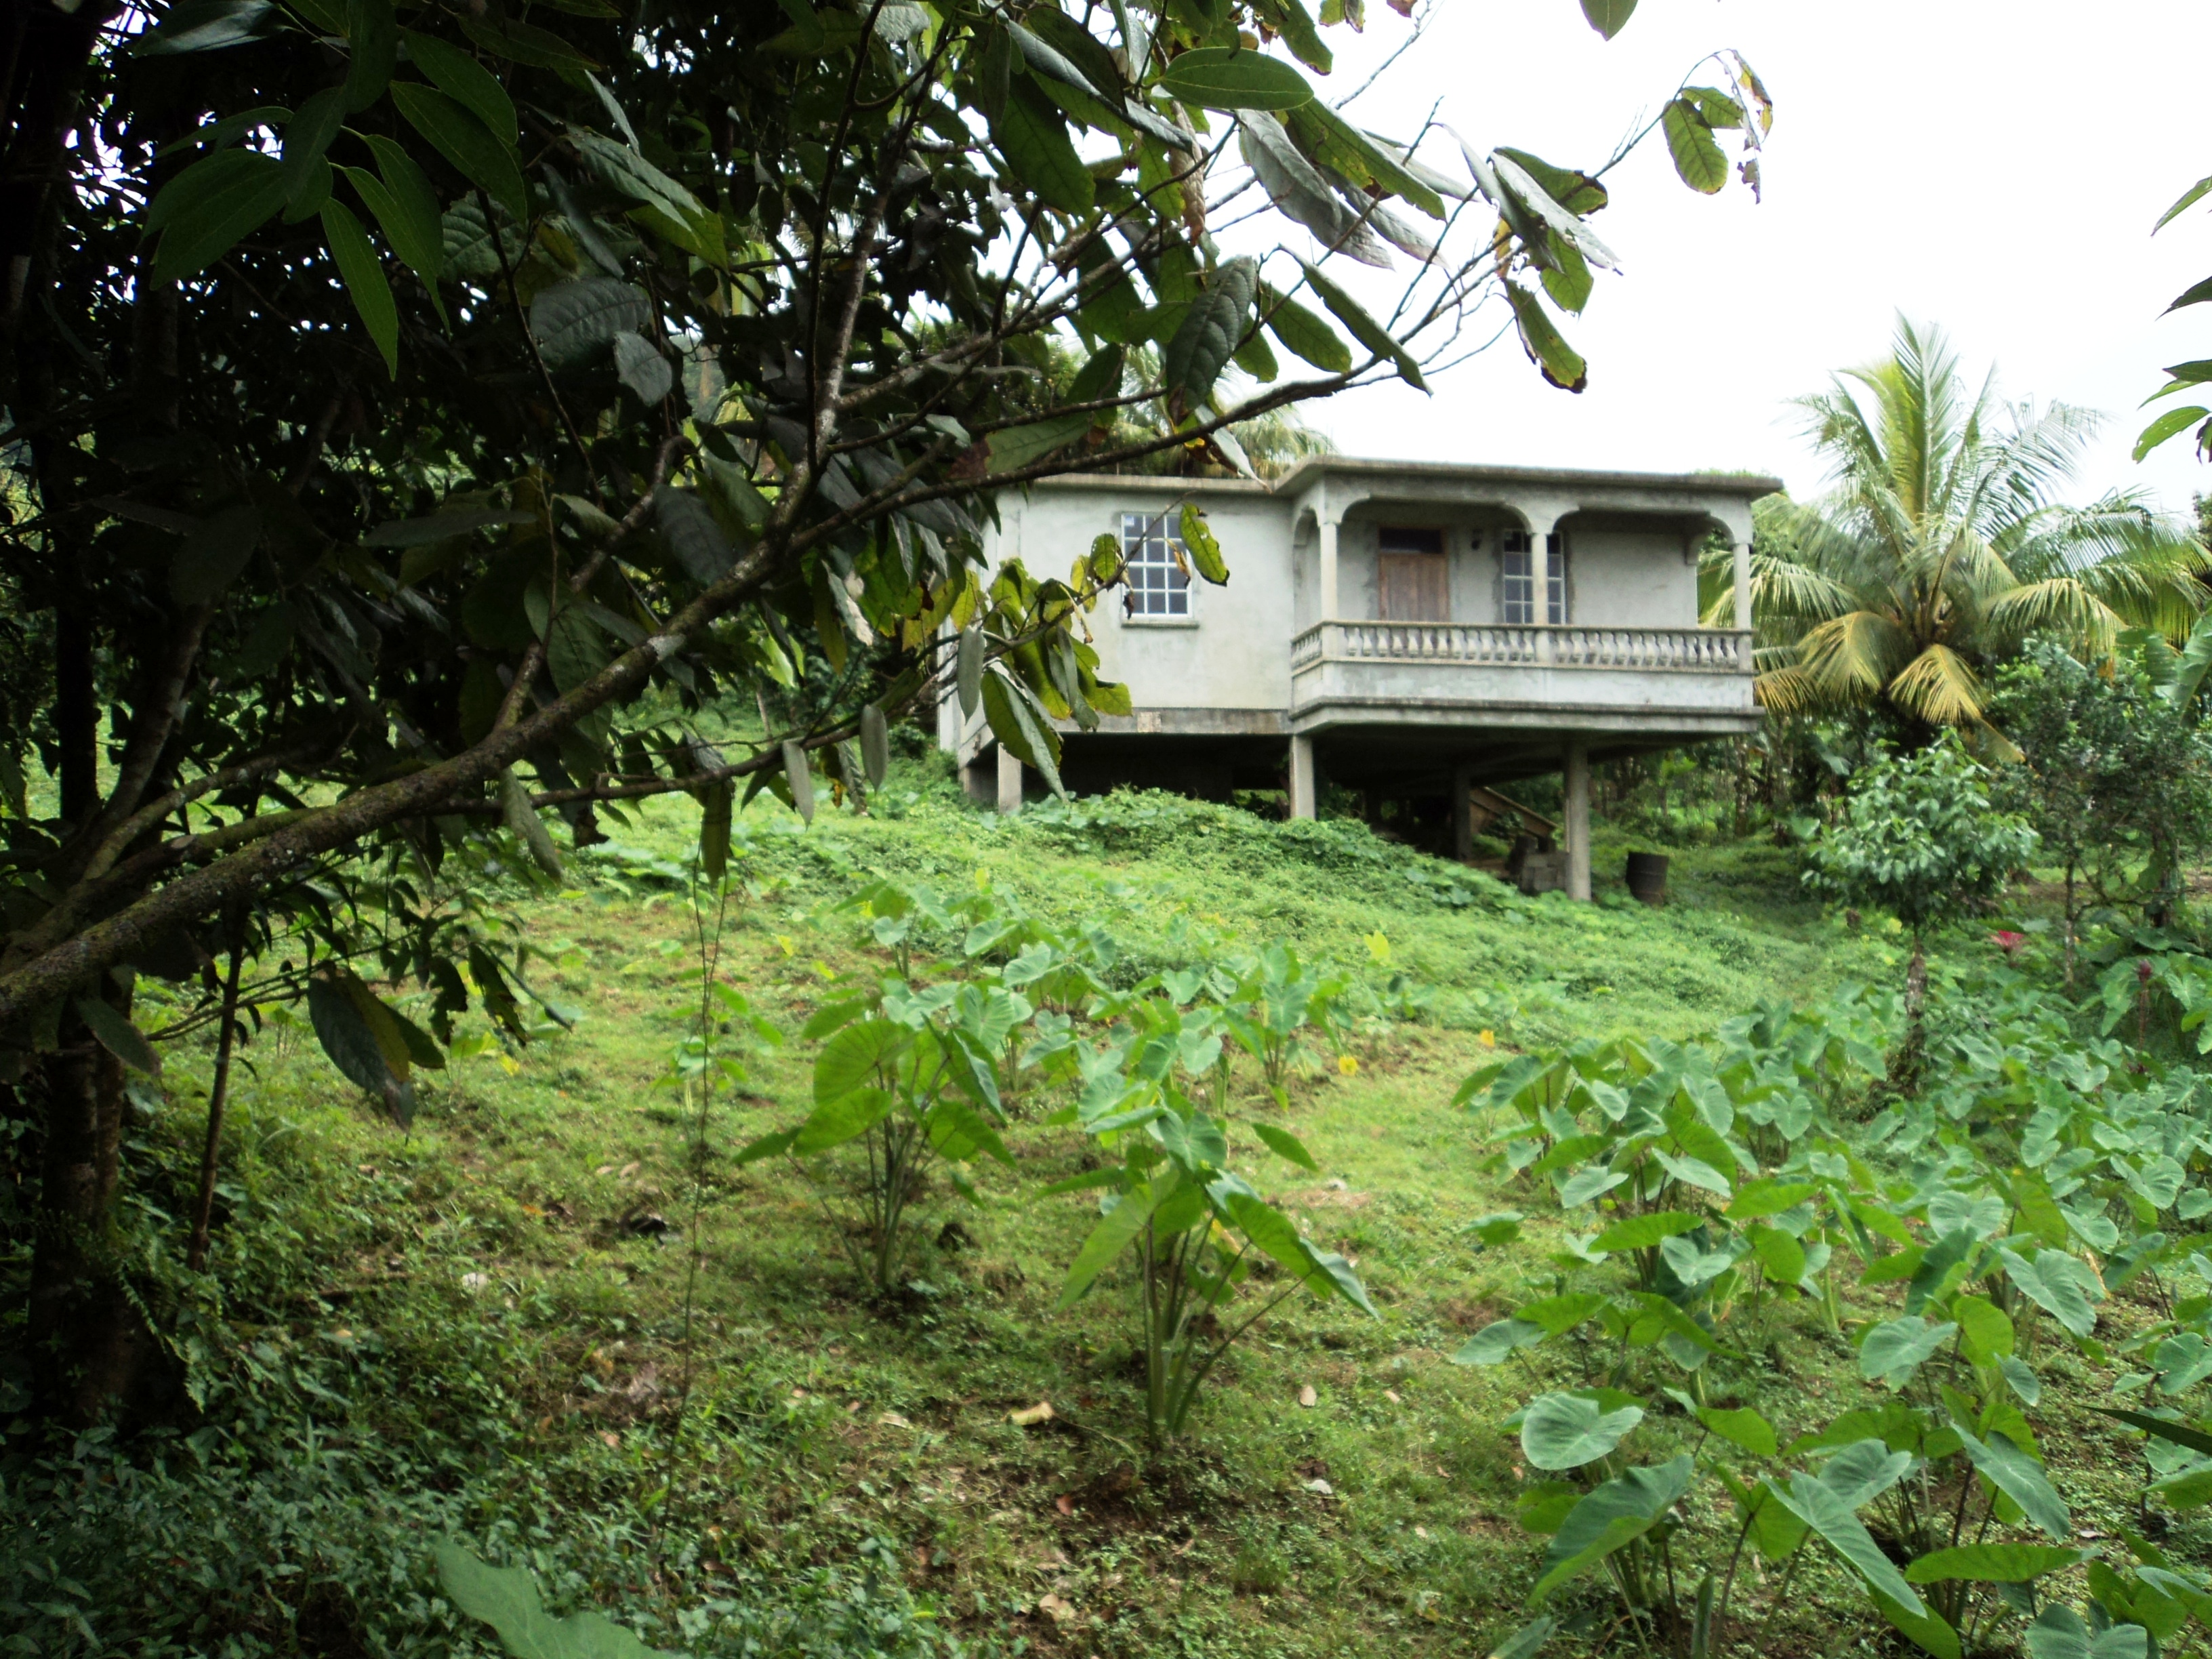 Dominica Real Estate: Unfinished house for sale